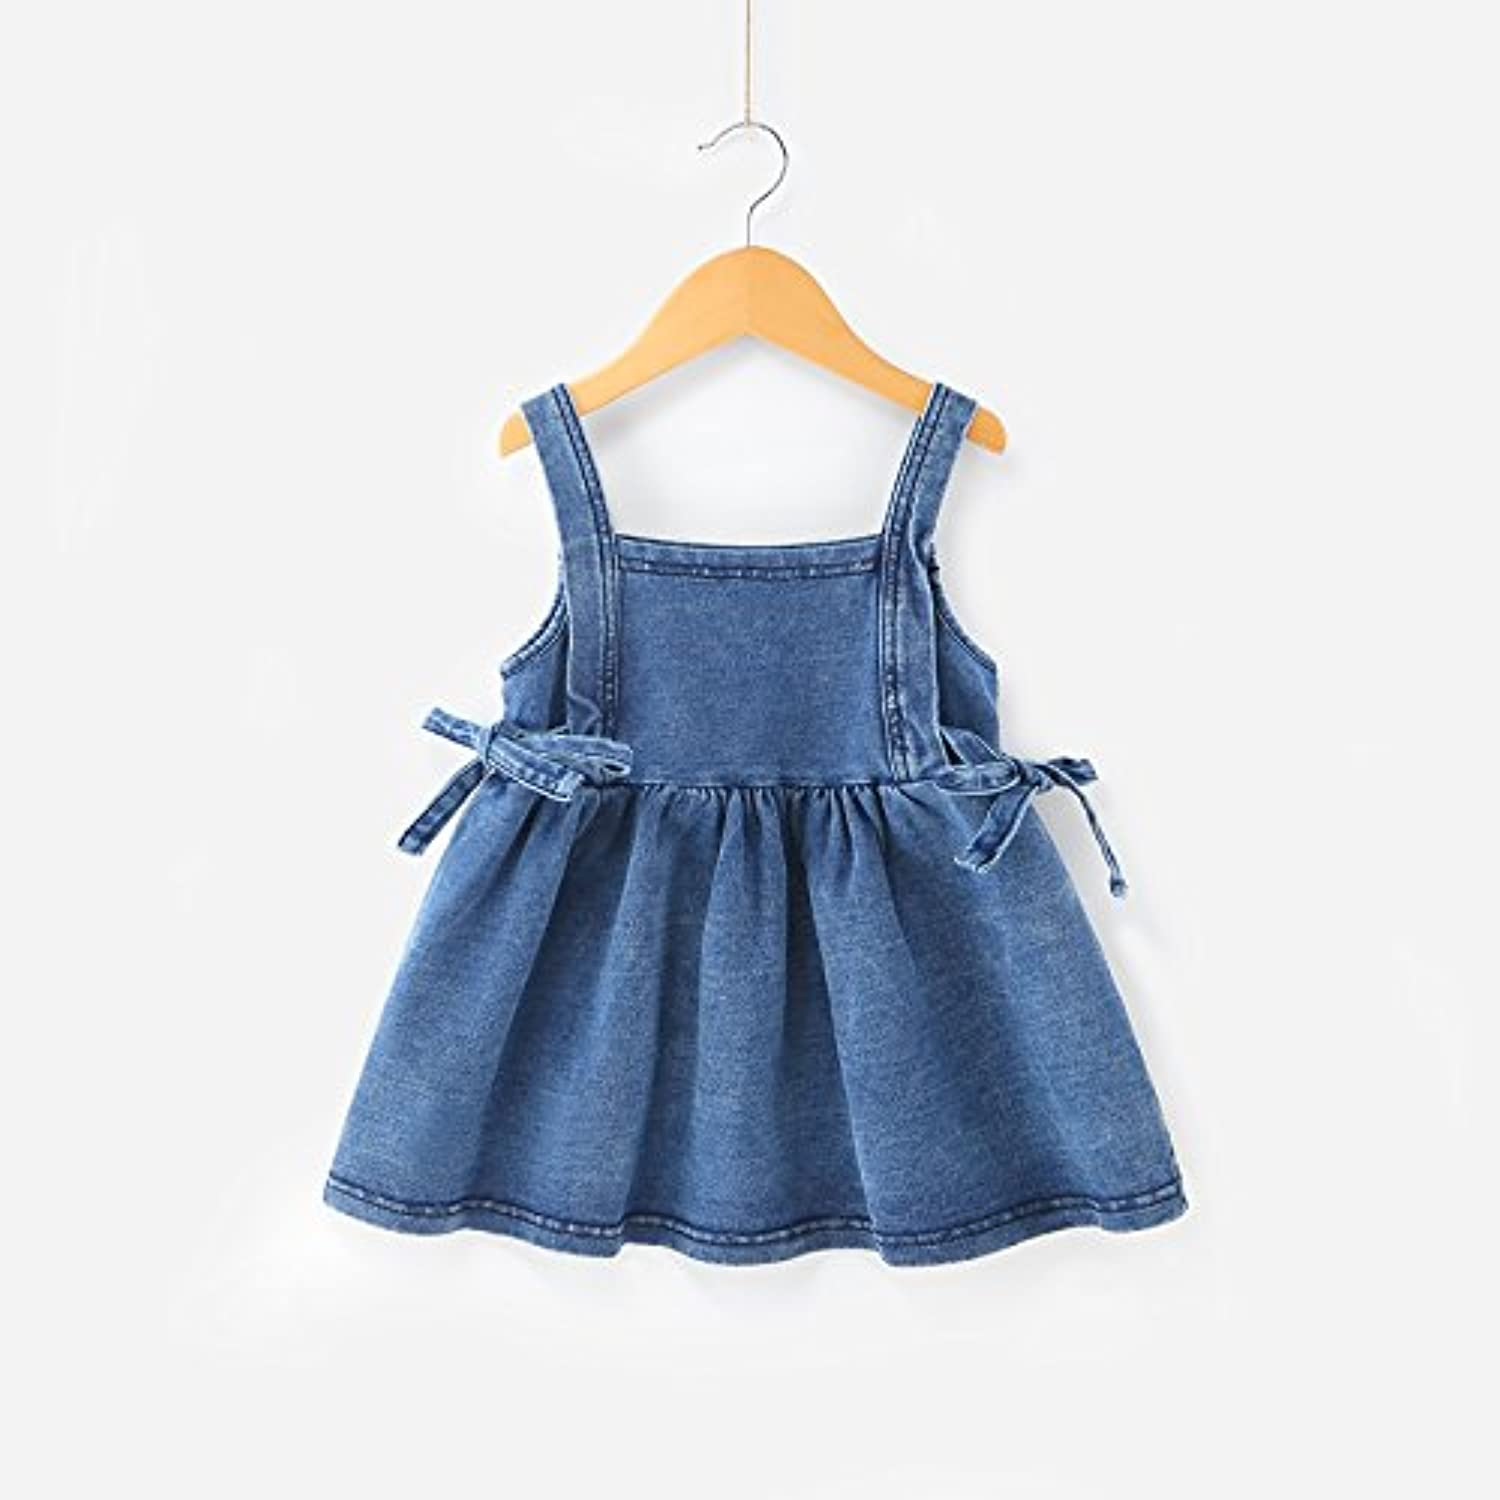 XIURONG Baby Dresses Skirts Skirts Skirts and Baby Dresses